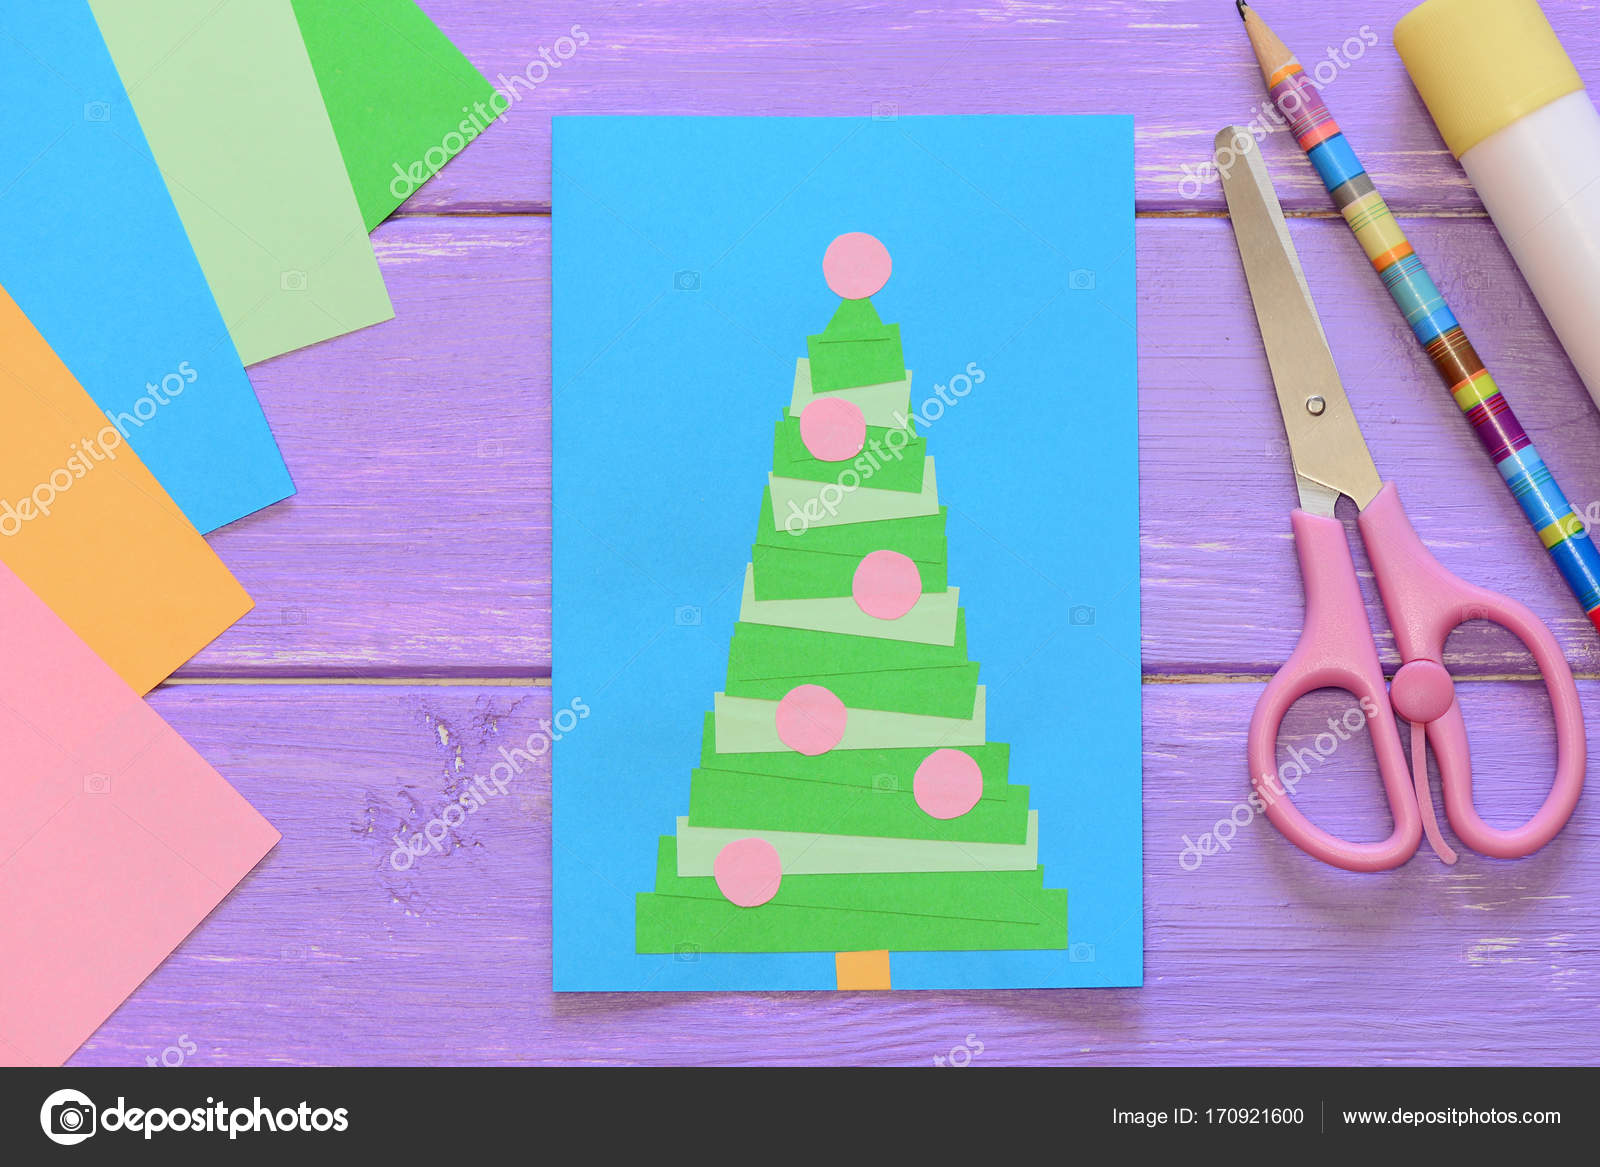 Christmas Card Scissors Glue Stick Pencil Colored Paper On